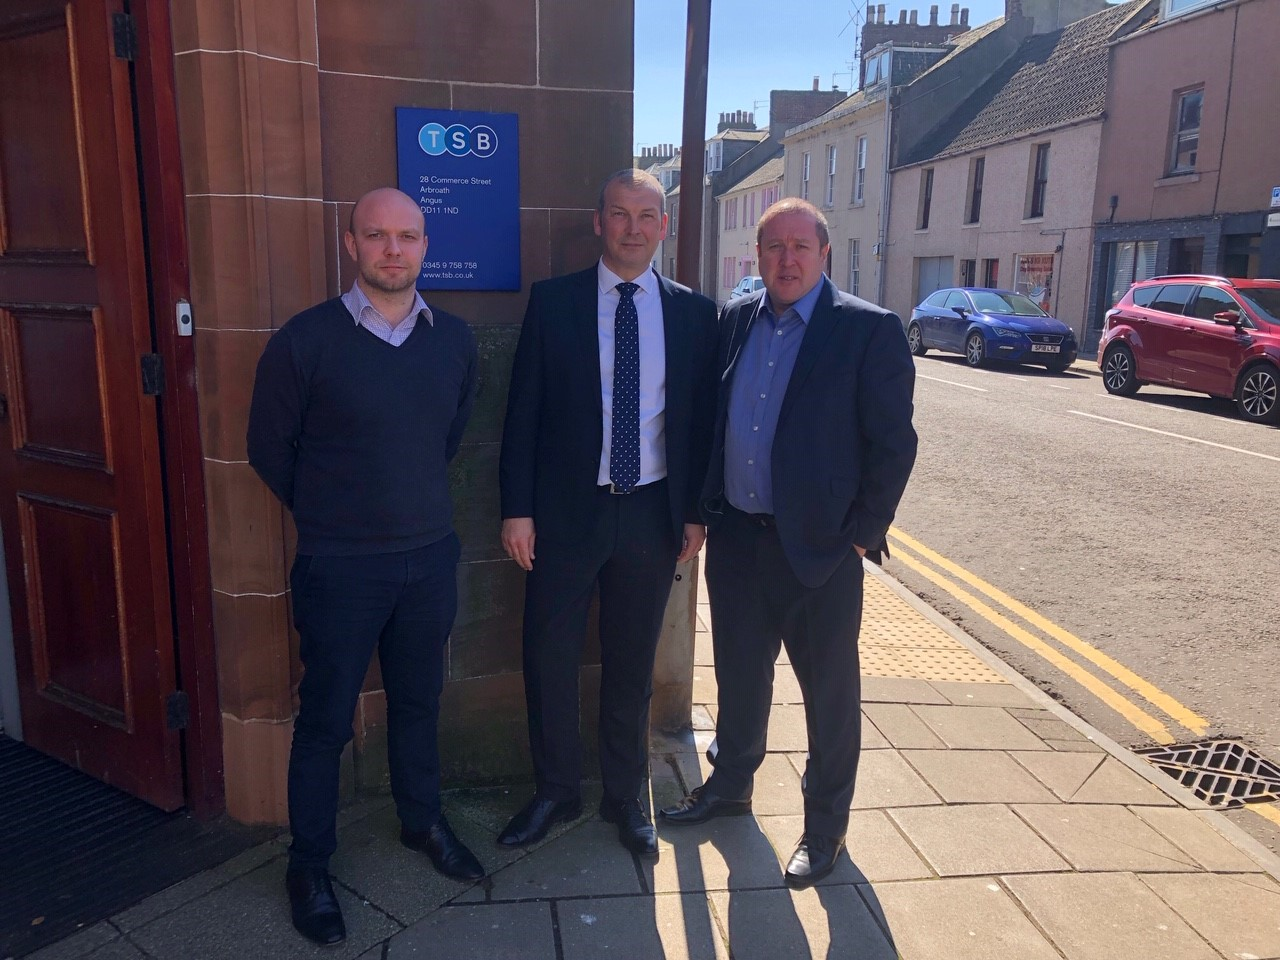 Left to right Cllr Mark McDonald, TSB Local Area Director, Chris Galloway and Graeme Dey MSP